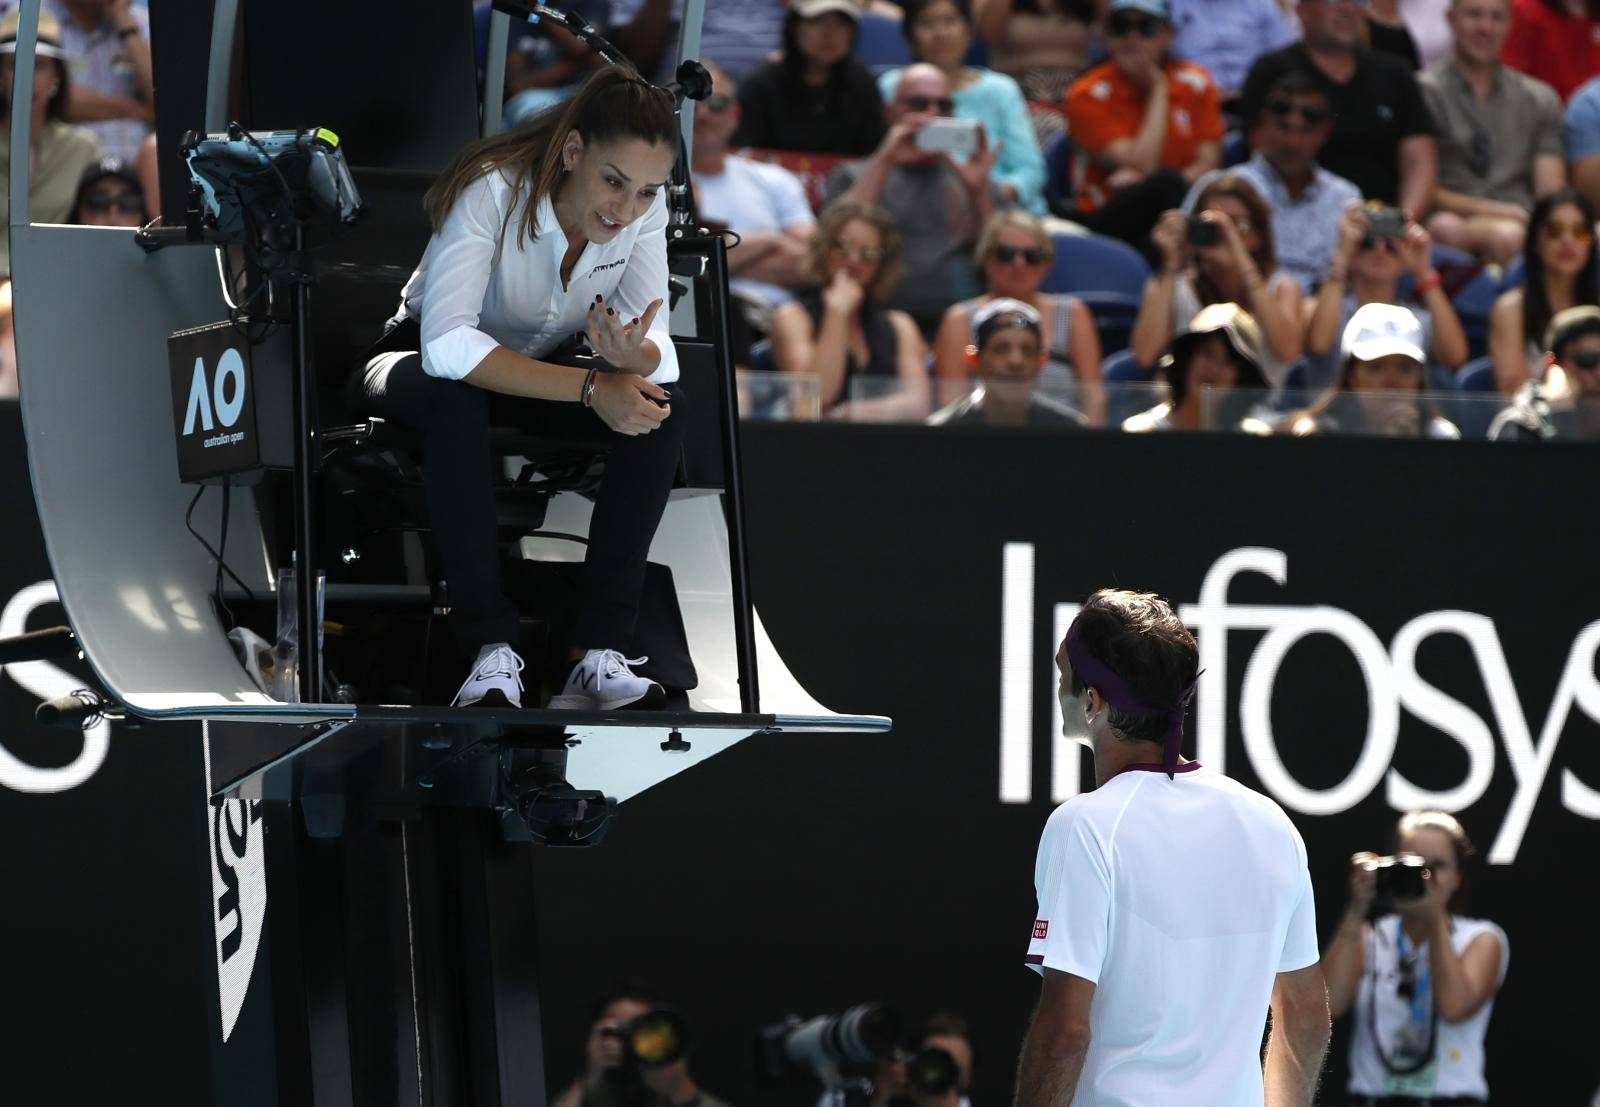 Tennis - Australian Open - Quarter Final